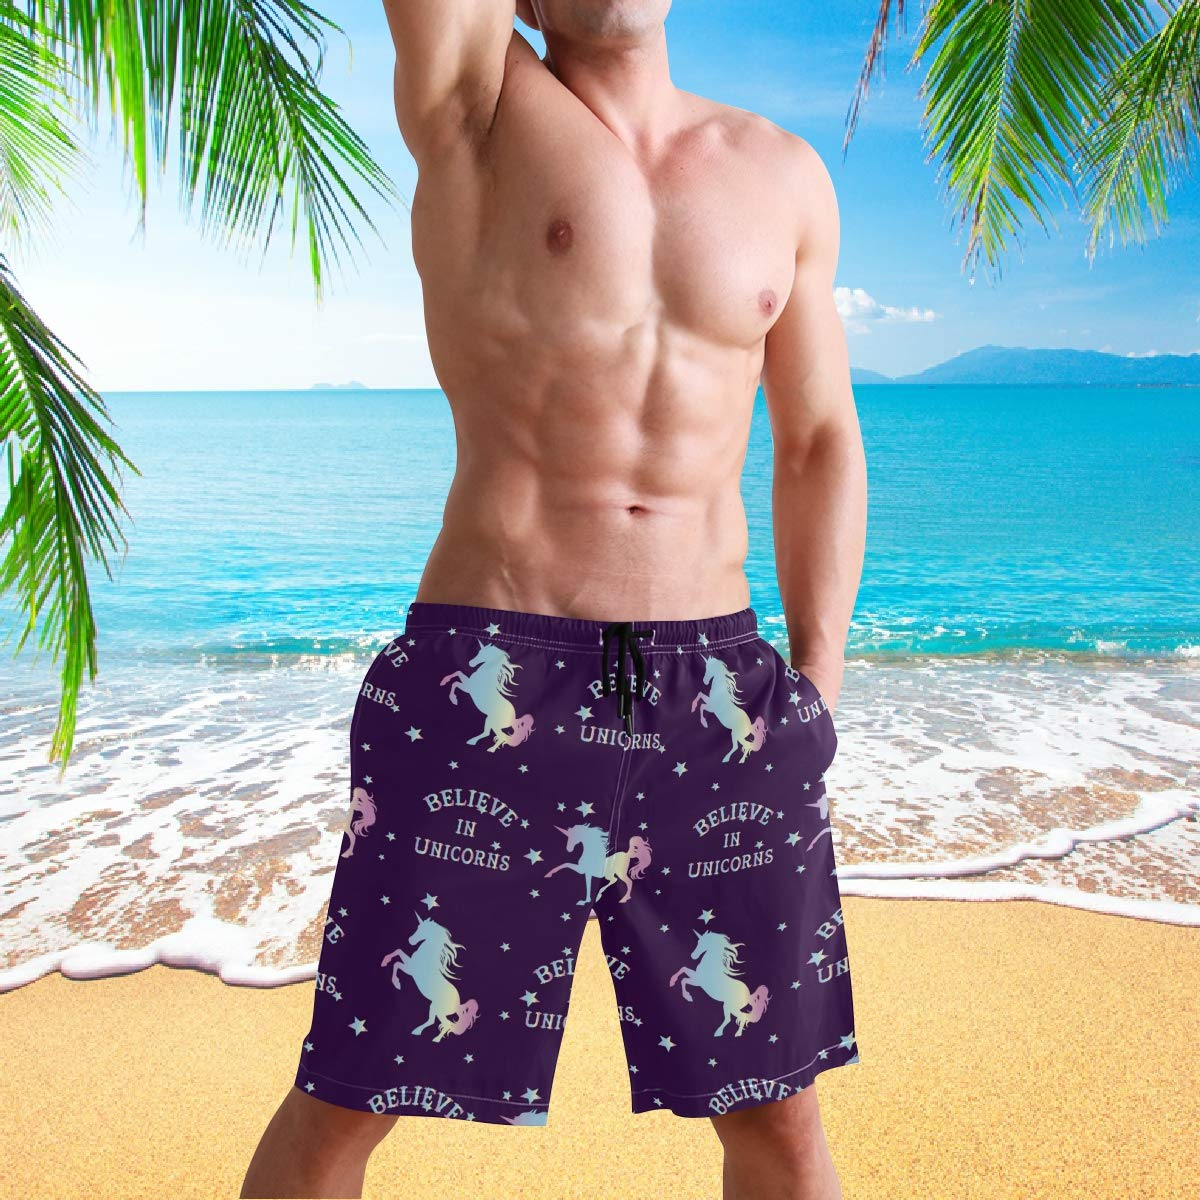 visesunny Believe in Unicorn Print Summer Mens Swim Trunks Quick Dry Bathing Suits Beach Holiday Party Board Shorts